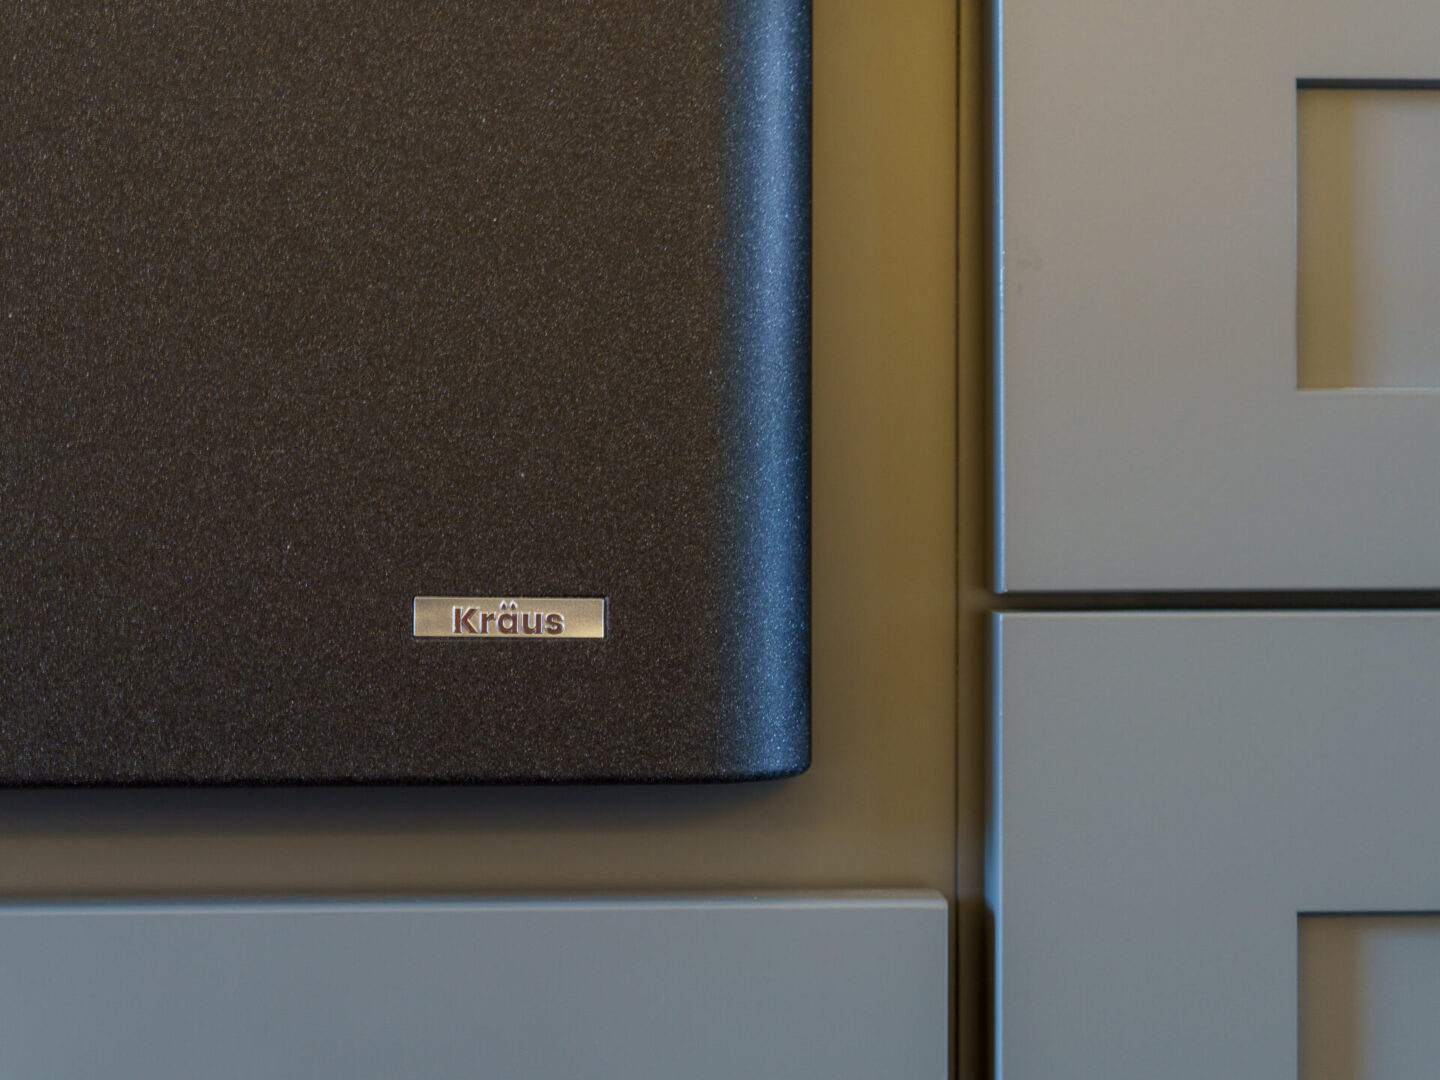 corner of a kitchen appliance with brand name